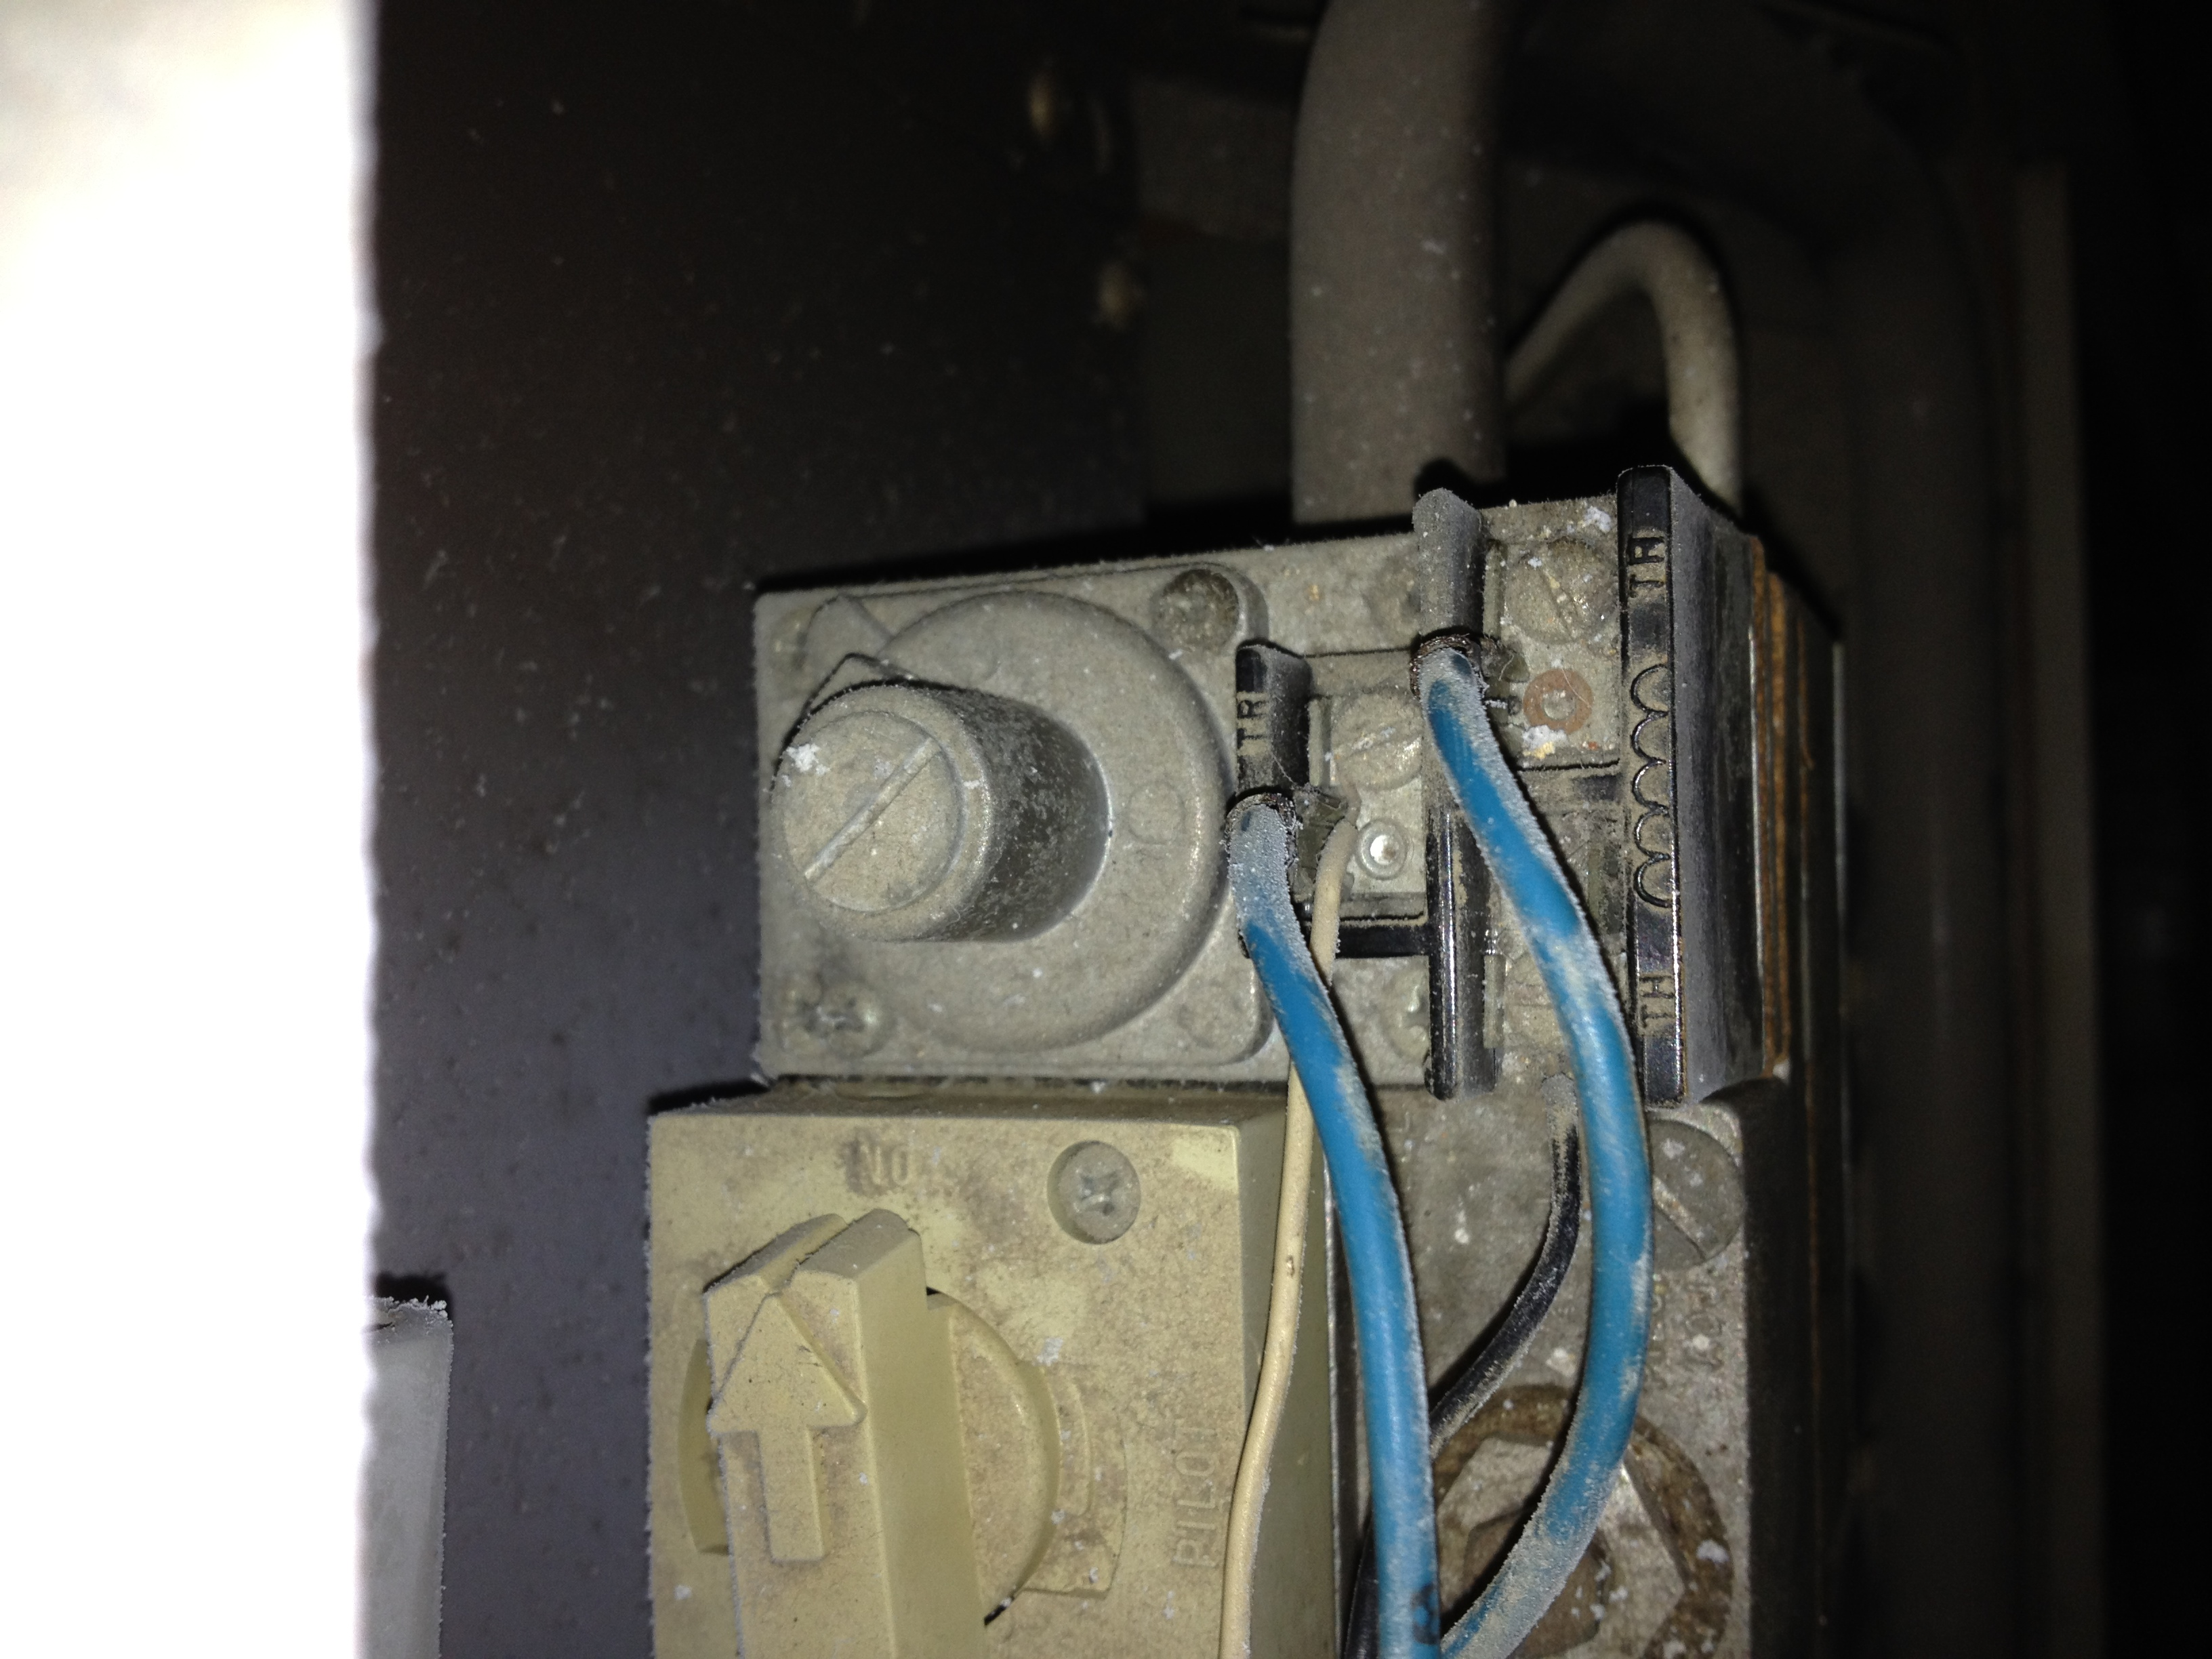 A Friend Of Mine Has An Old Lennox Furnace With Two Thermostat Wires Wiring Diagram Full Size Image